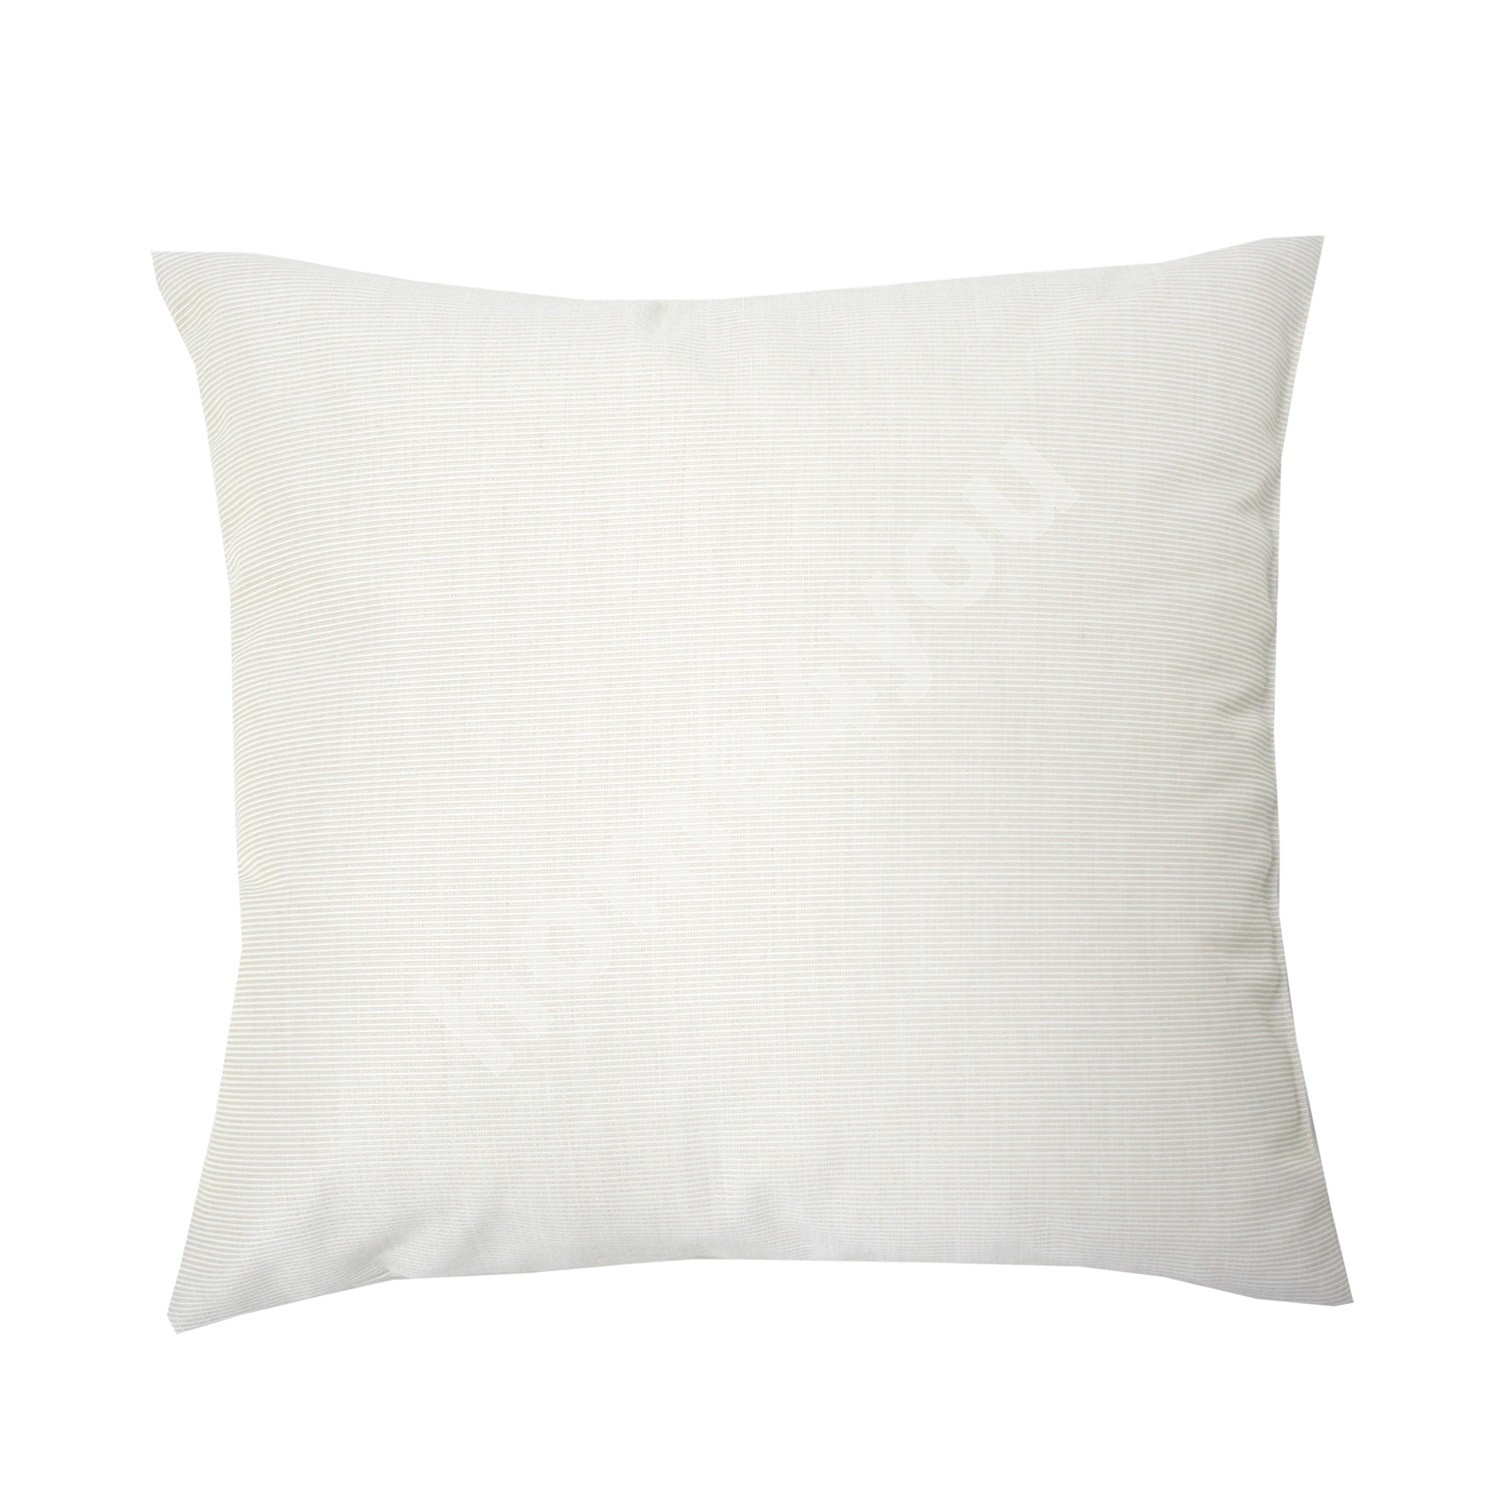 Cushion SUMMER, 40x40cm, fabric 617, 100% polyester